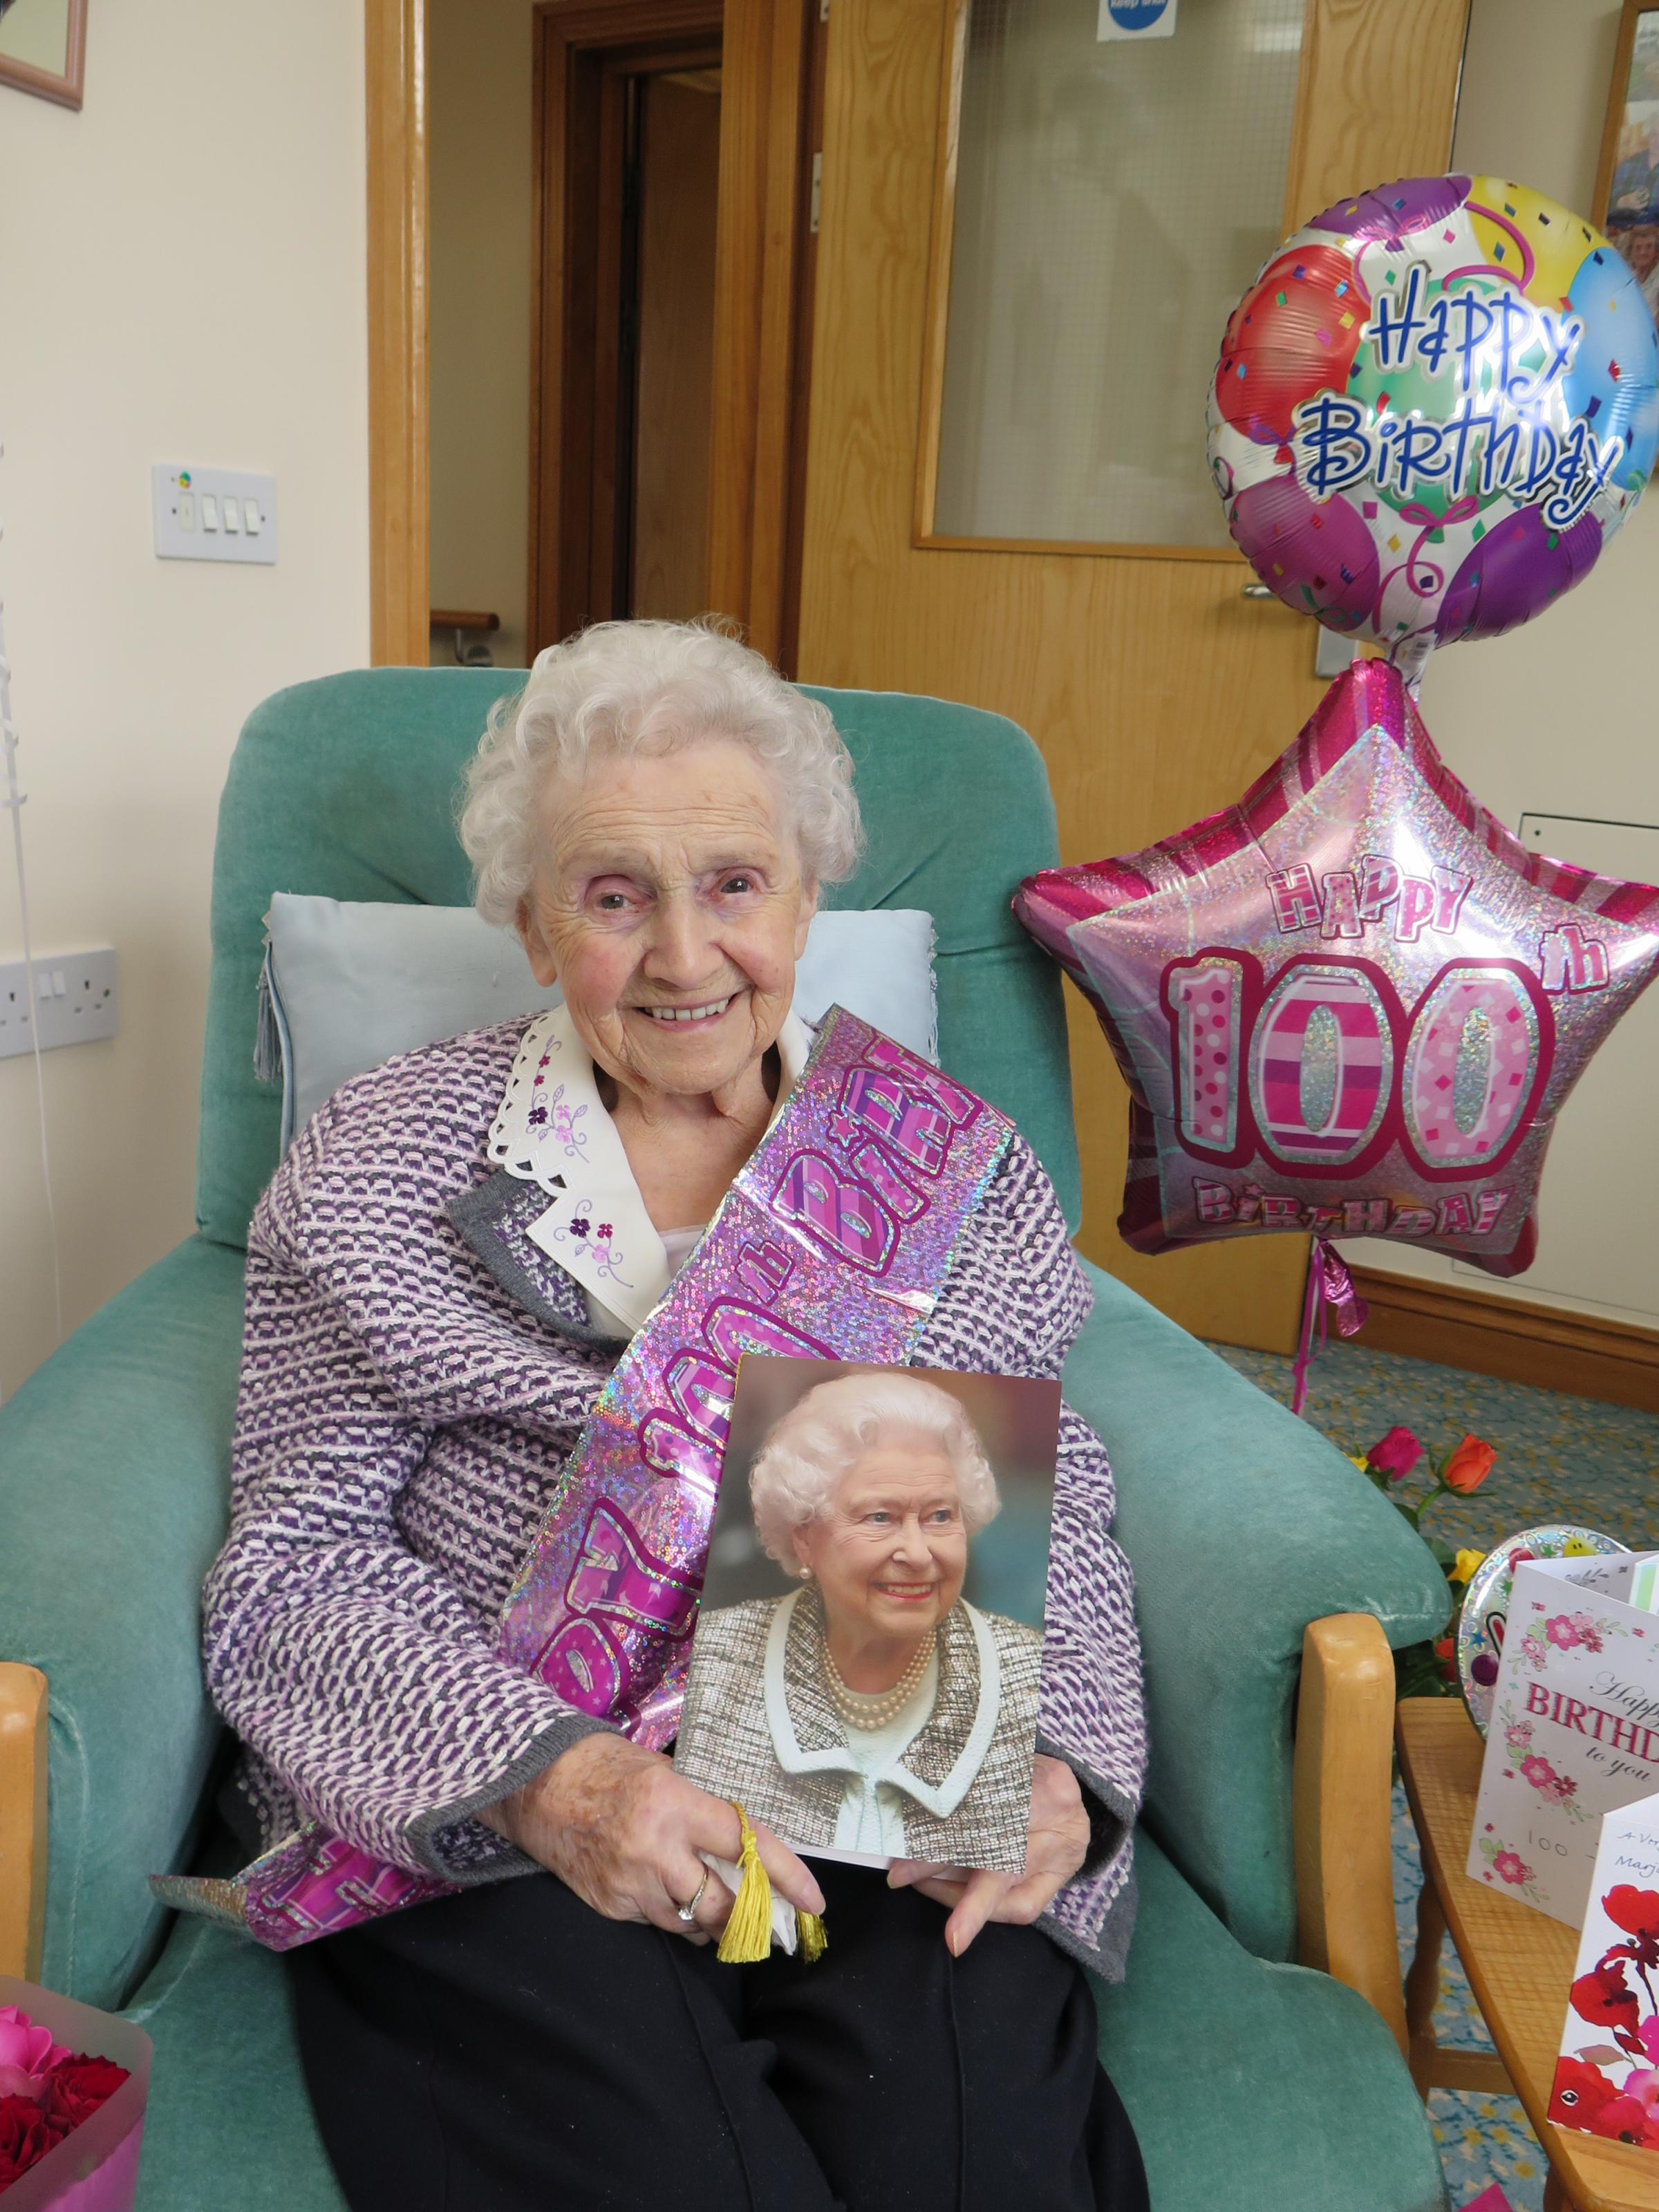 Marjorie Ovens Celebrating Her 100th Birthday With Hundreds Of Good Whishes From The PublicPic Chris Tinsley